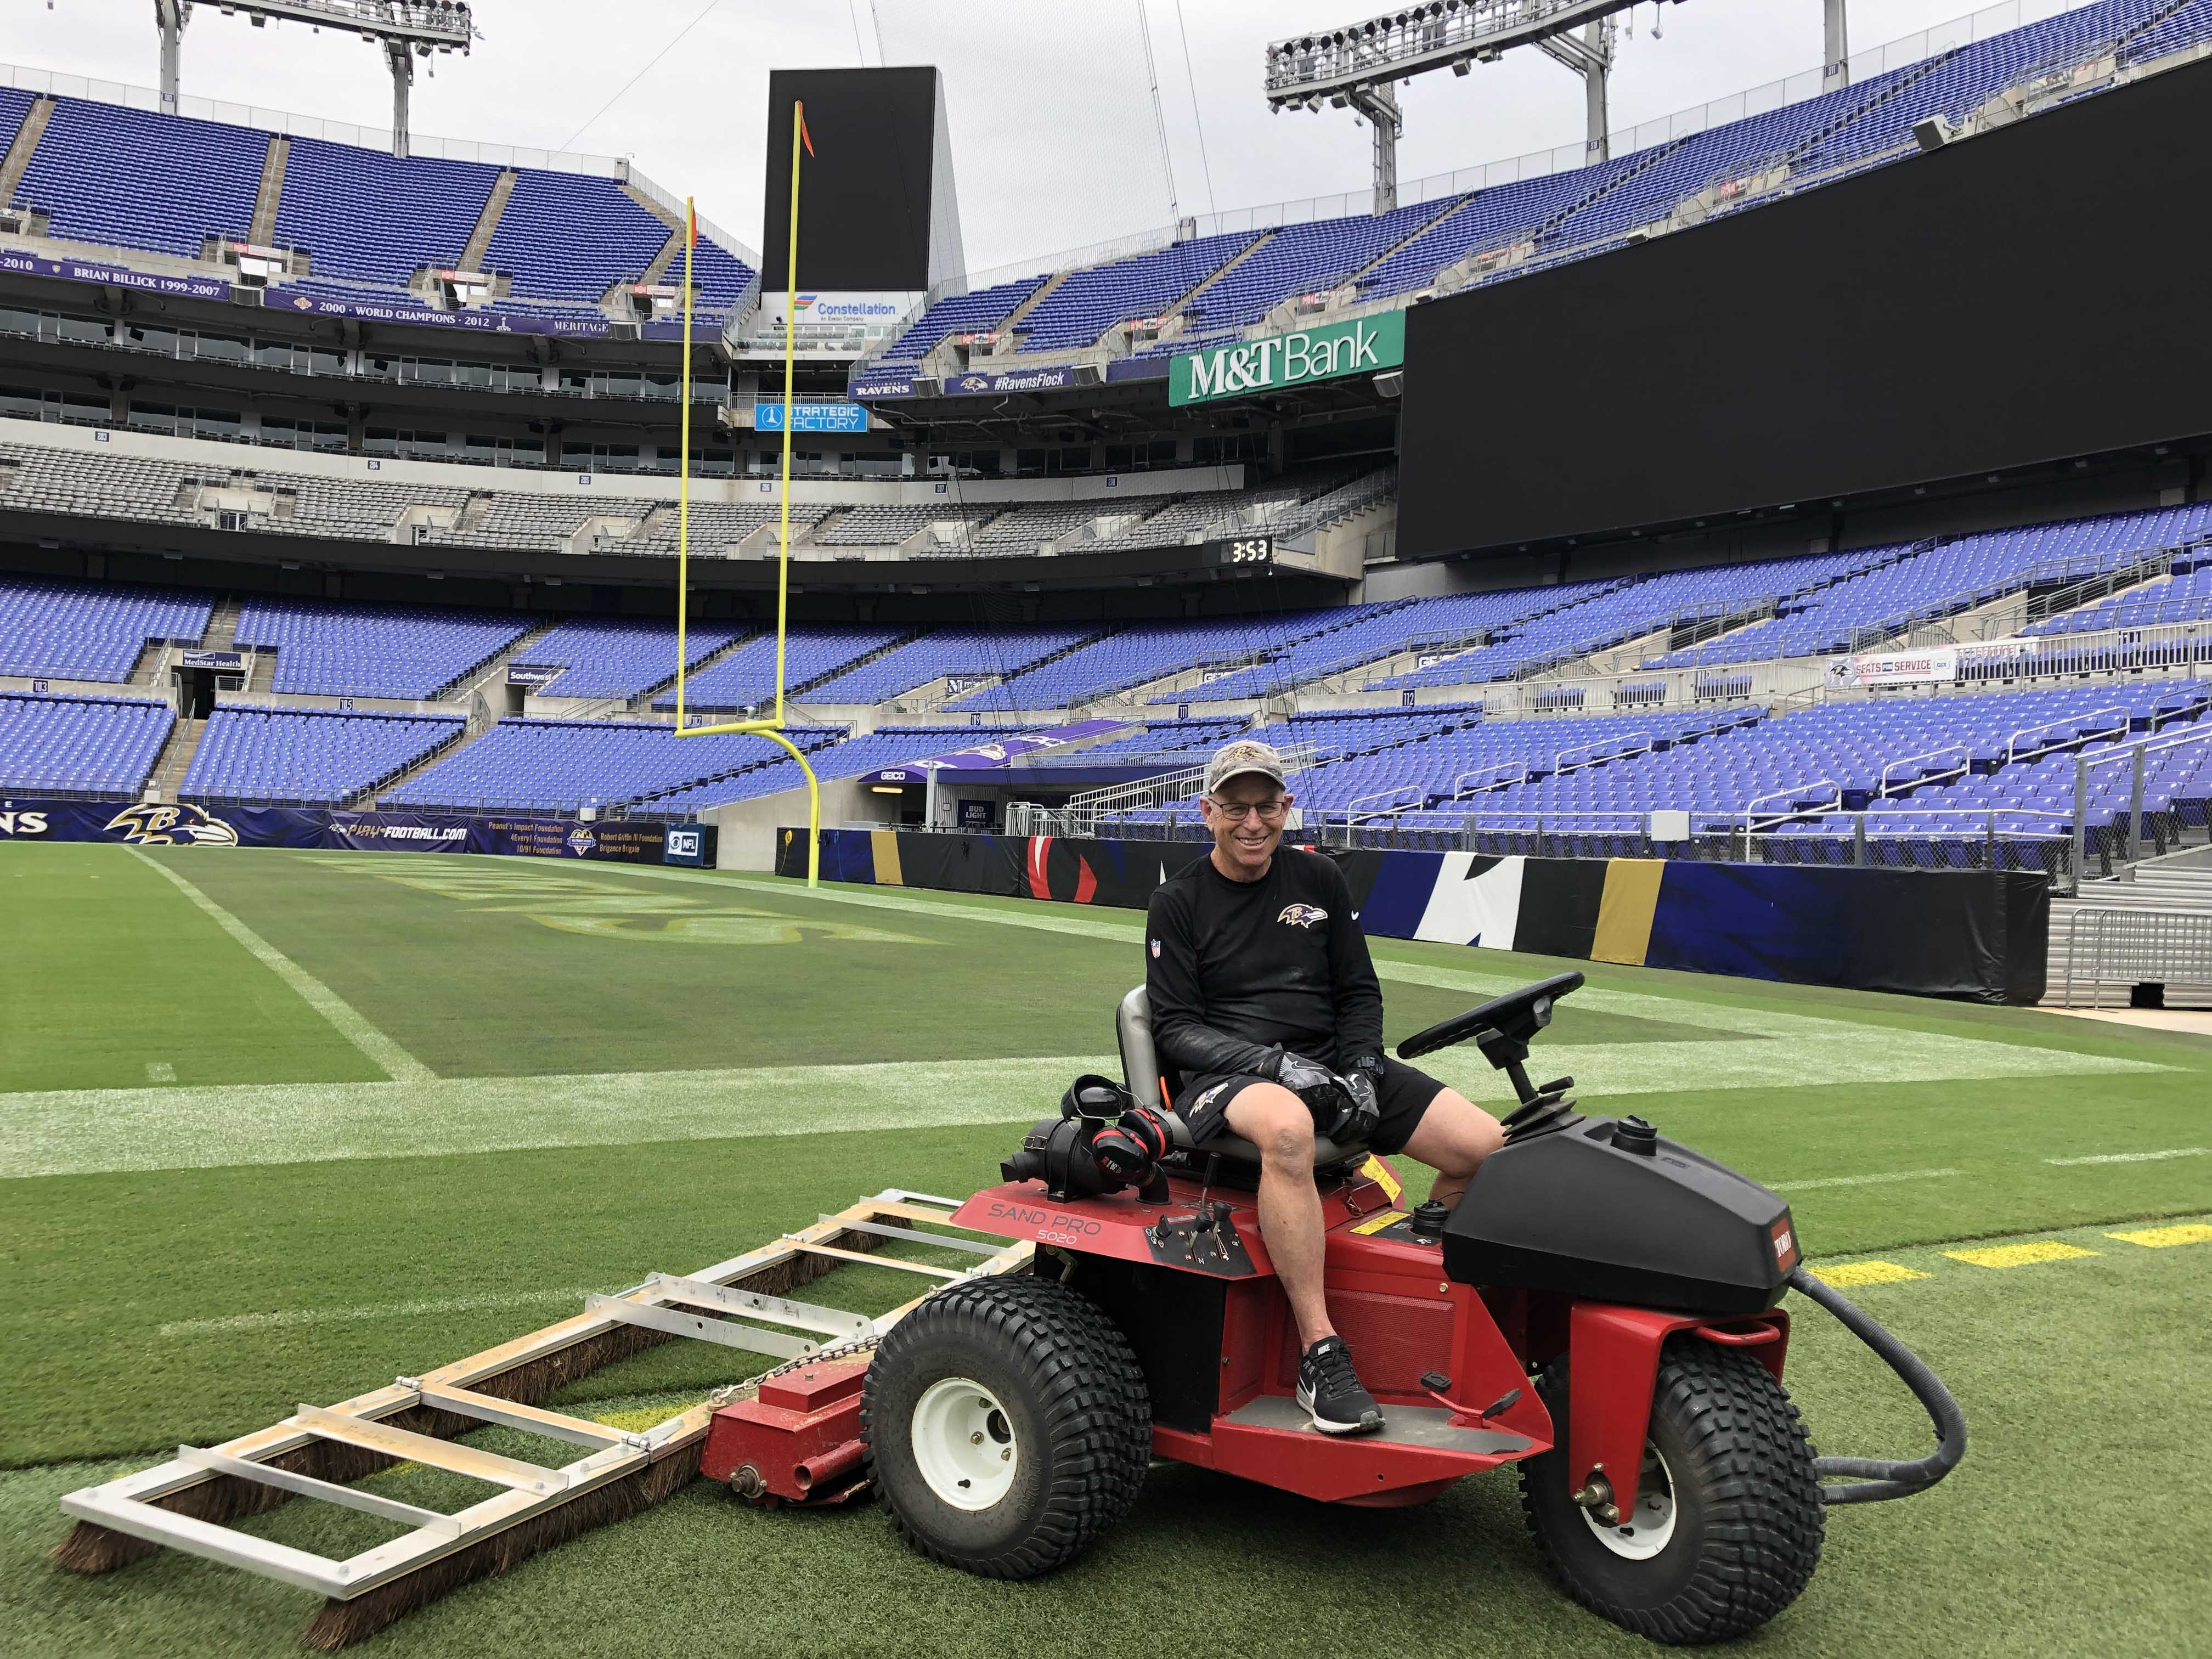 Baltimore Ravens groundskeeper Don Follett brushes rye grass seed into the turf at M&T Bank Stadium in Baltimore in September.Follett said extreme weather is something he grapples with. (Andy Kostka/Capital News Service)